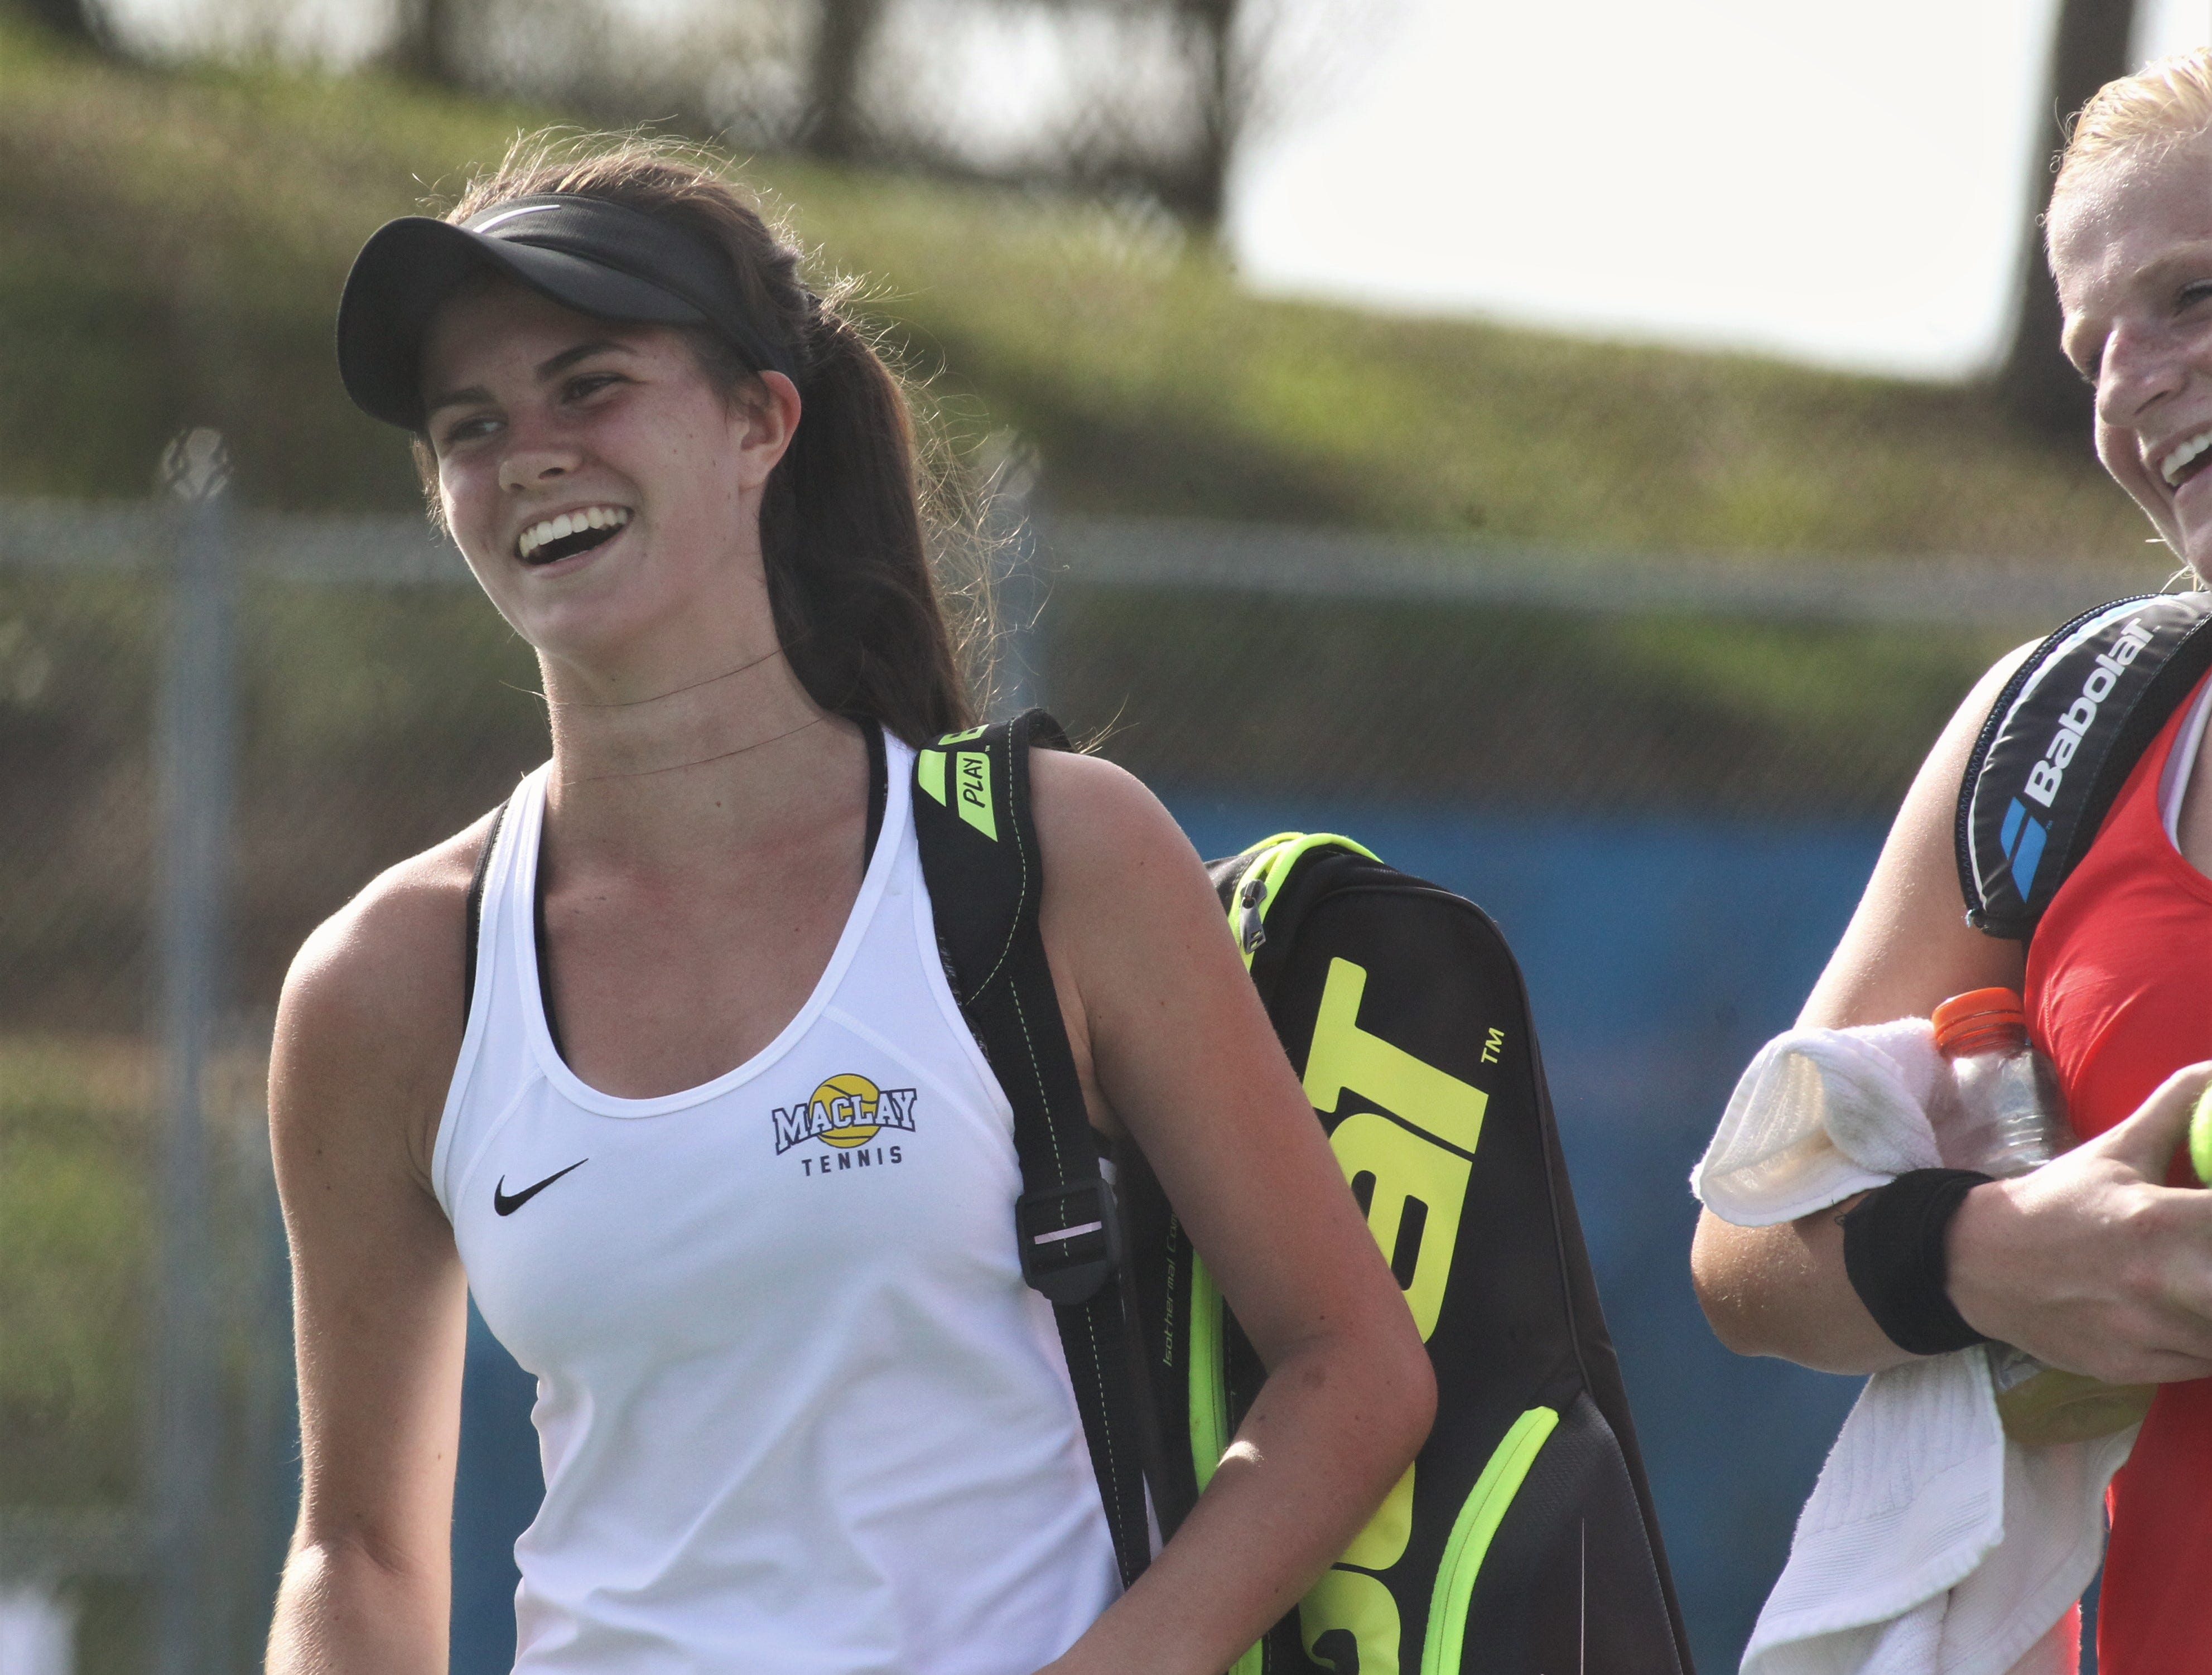 Maclay's Madison Perkins laughs with Leon's Jules Grady after they play during the boys and girls tennis city tournament at Tom Brown Park on March 13, 2019.